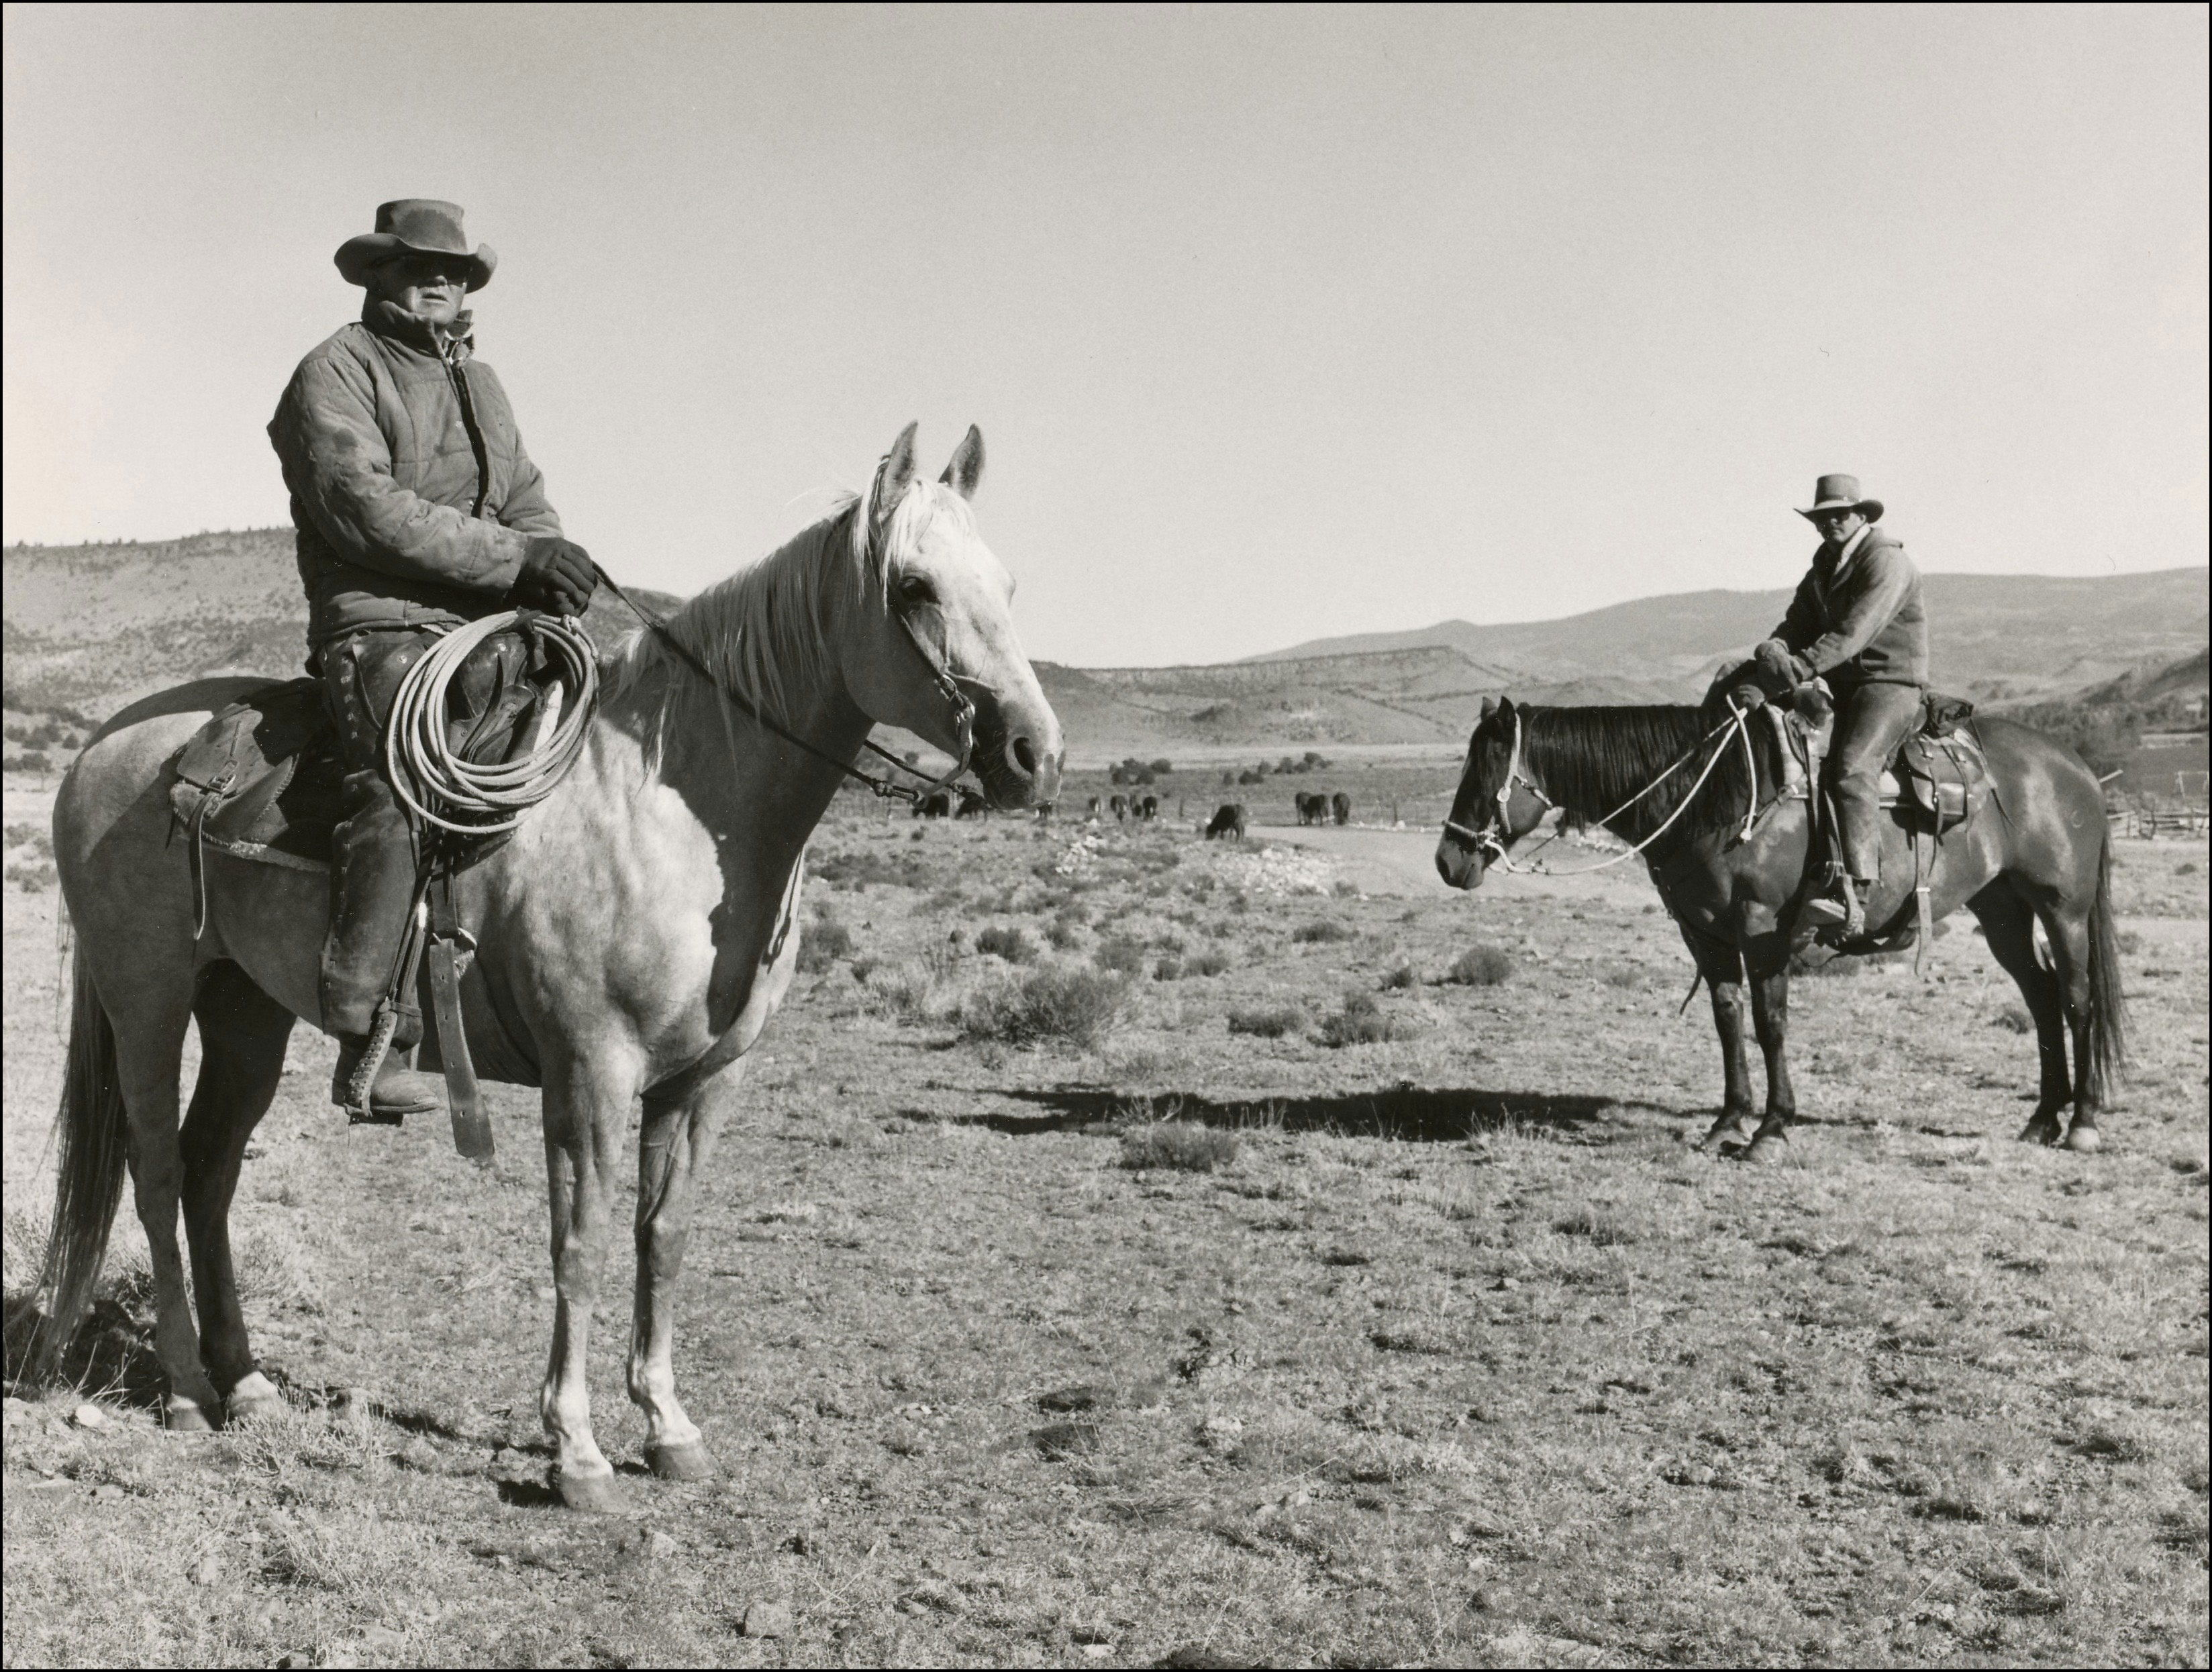 two ranchers on horses with cattle in the background